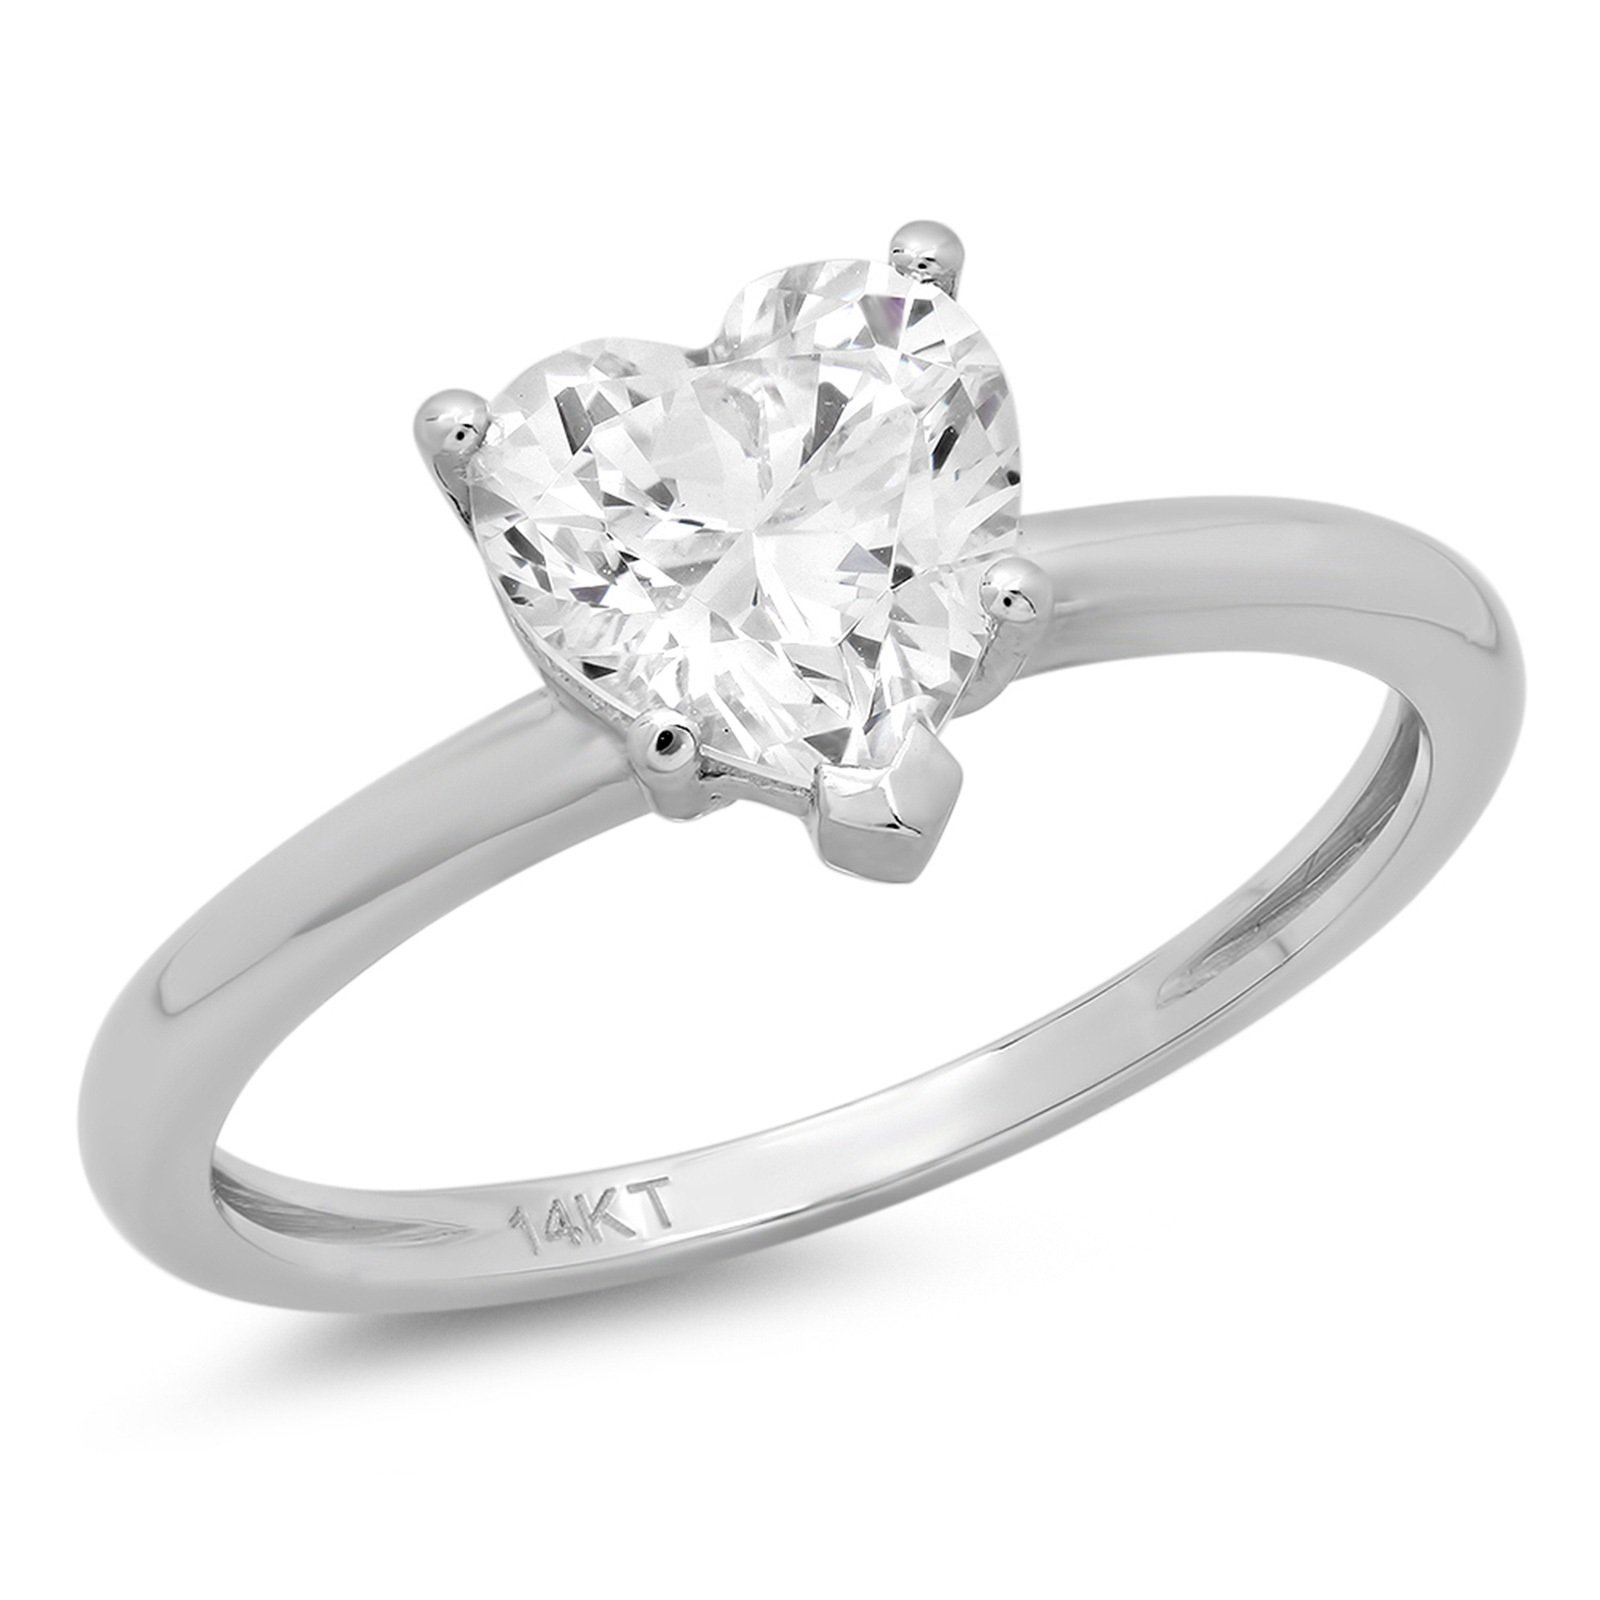 2.0 ct Brilliant Heart Cut Solitaire Highest Quality Lab Created White Sapphire Ideal VVS1 D 5-Prong Engagement Wedding Bridal Promise Anniversary Ring Solid Real 14k White Gold for Women